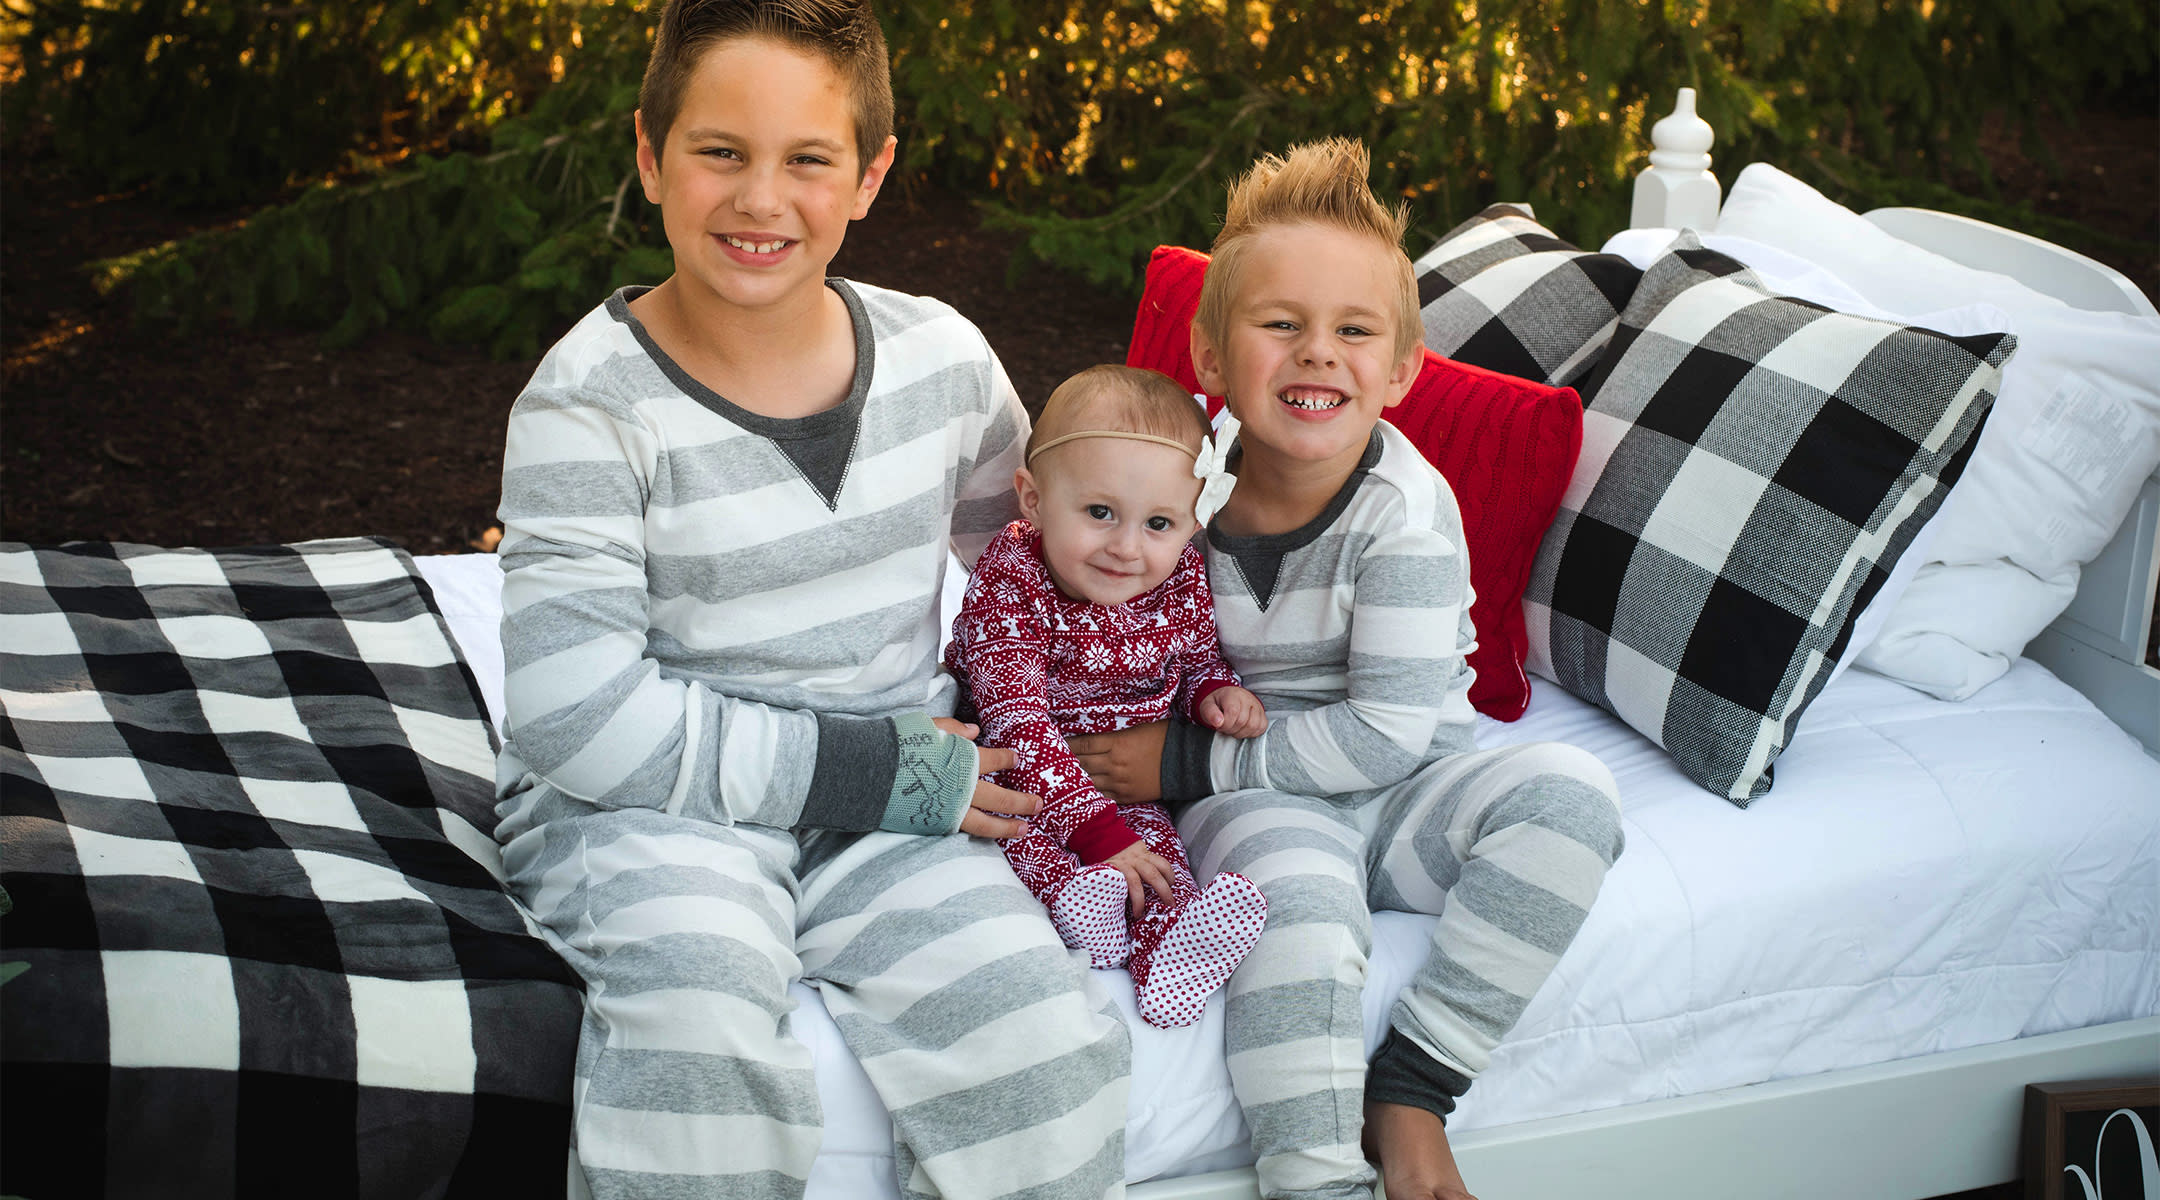 three siblings wearing matching holiday pajamas